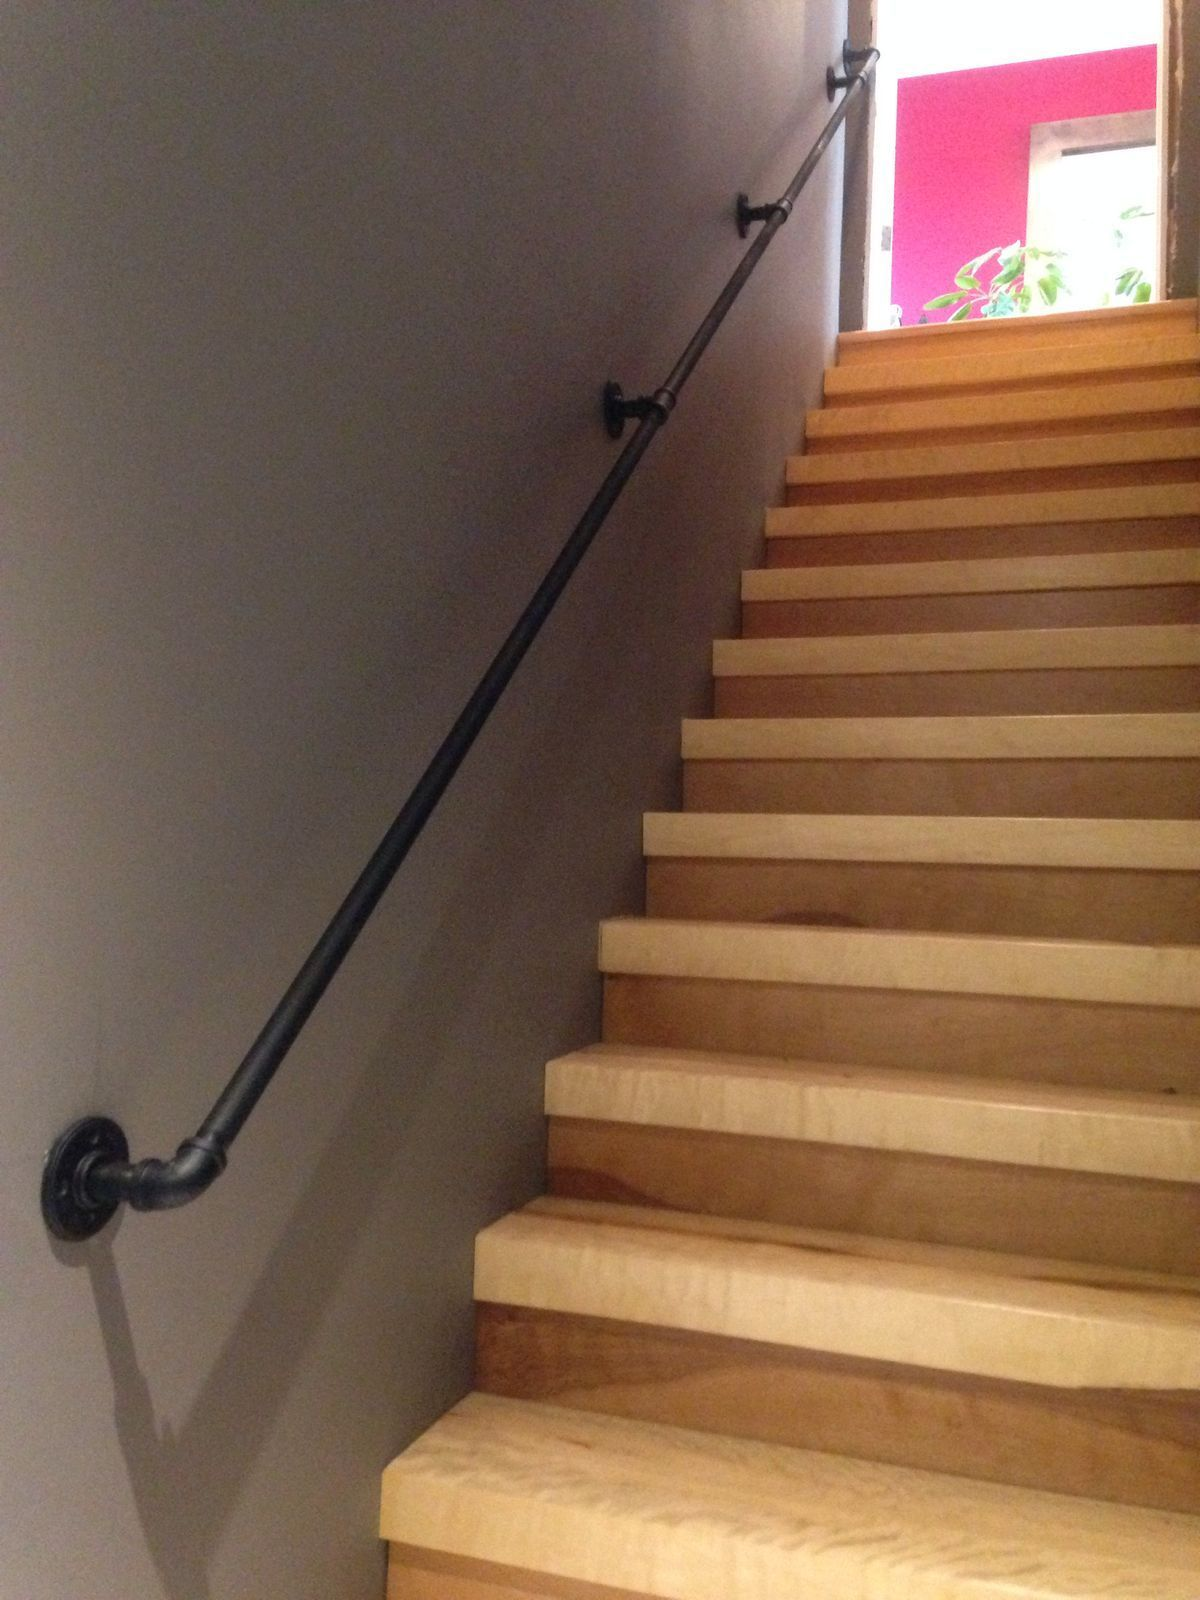 64 Awesome Photos Of Stairway Handrail Ideas Stair Remodel Basement Stairs Diy Stairs